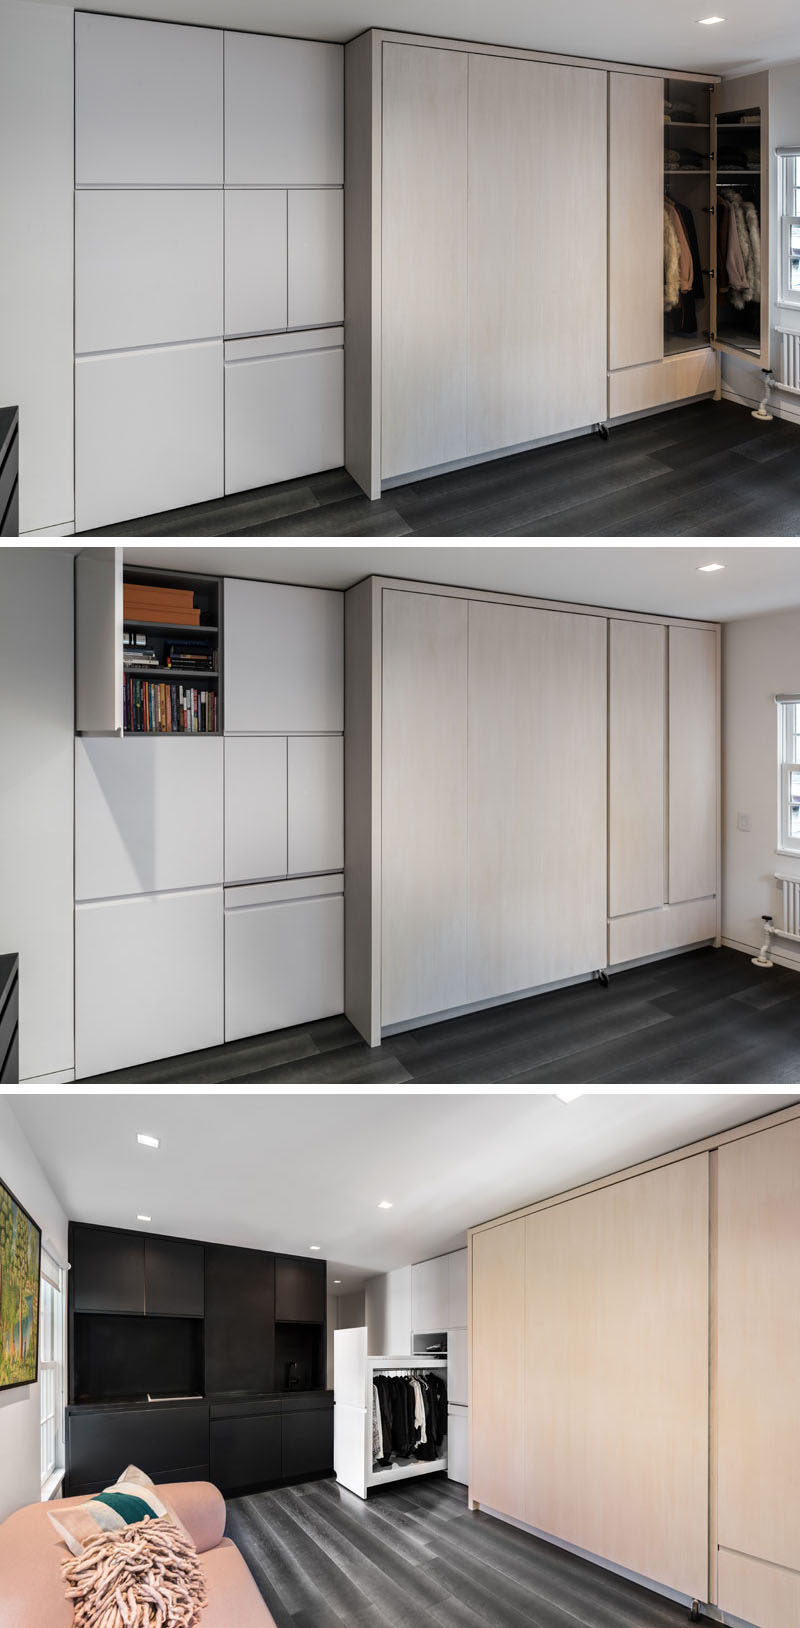 This micro apartment has a wall of cabinets with multiple closet and storage spaces. One closet has a mirrored door, there's a small area for storing books and other personal items, and below that is a second closet with a bar for hanging coats, shirts and pants.